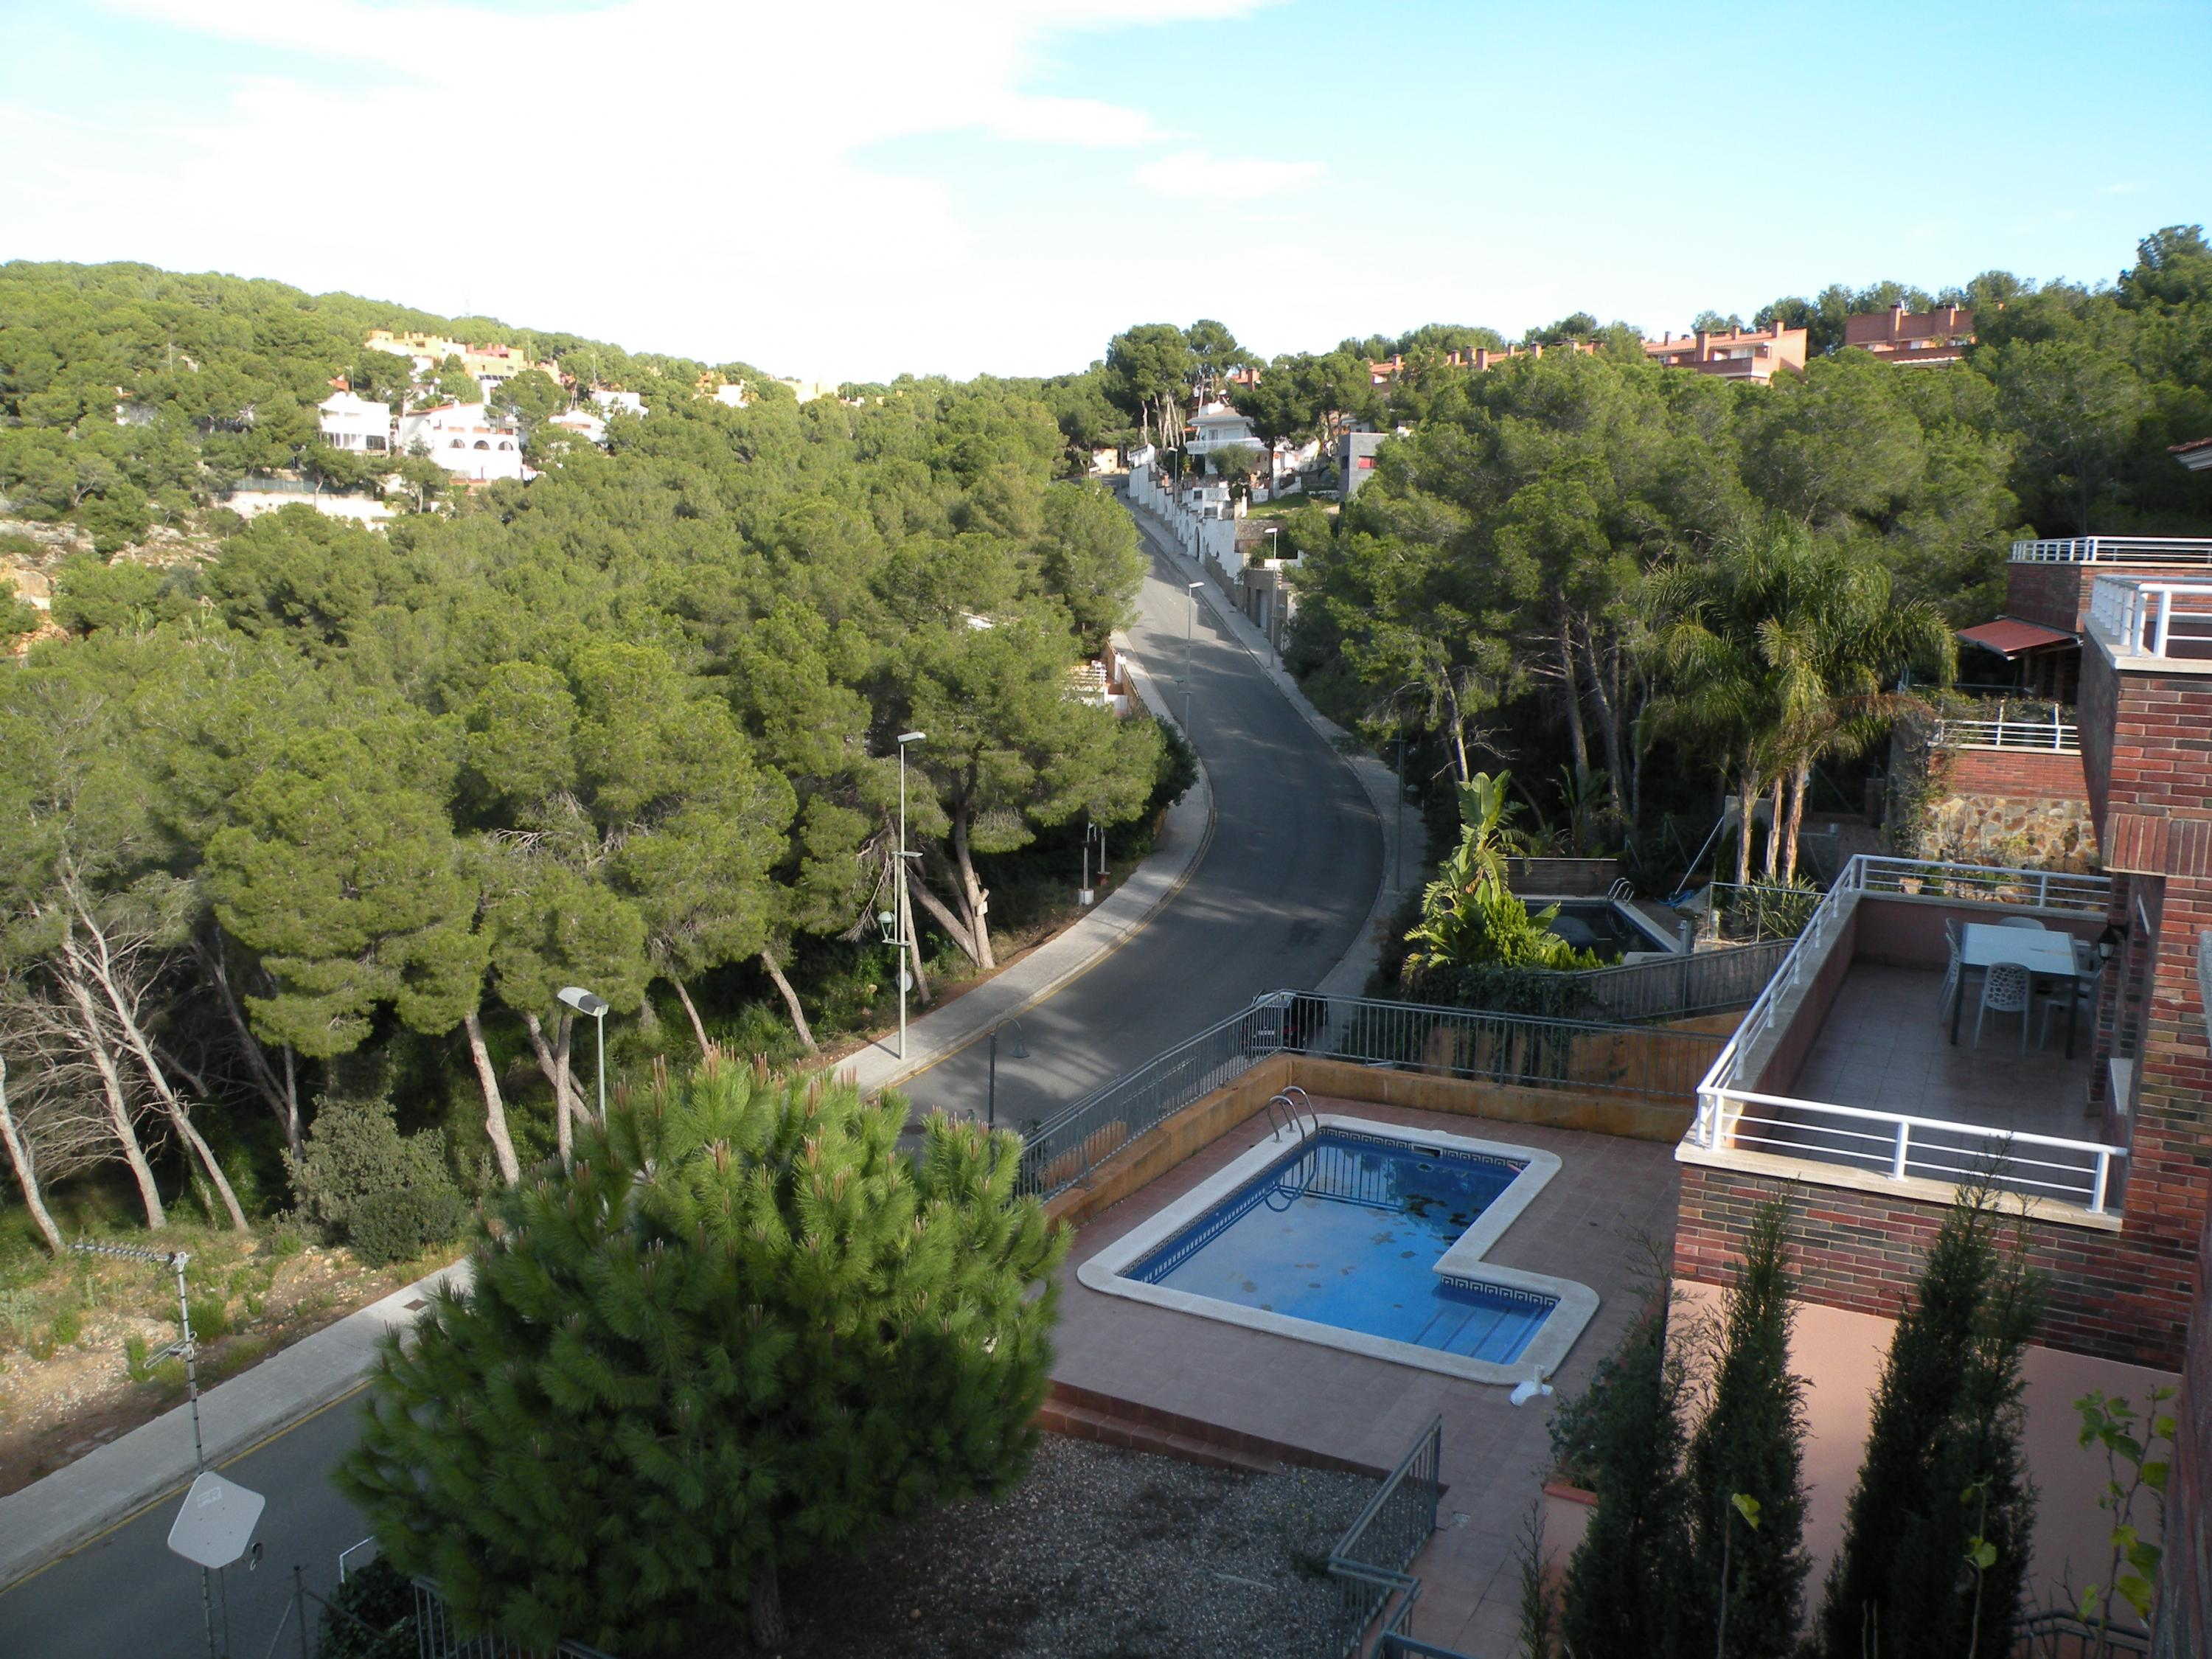 CB049 Tarraco Mar - La Mora Detached house PLAYA Altafulla